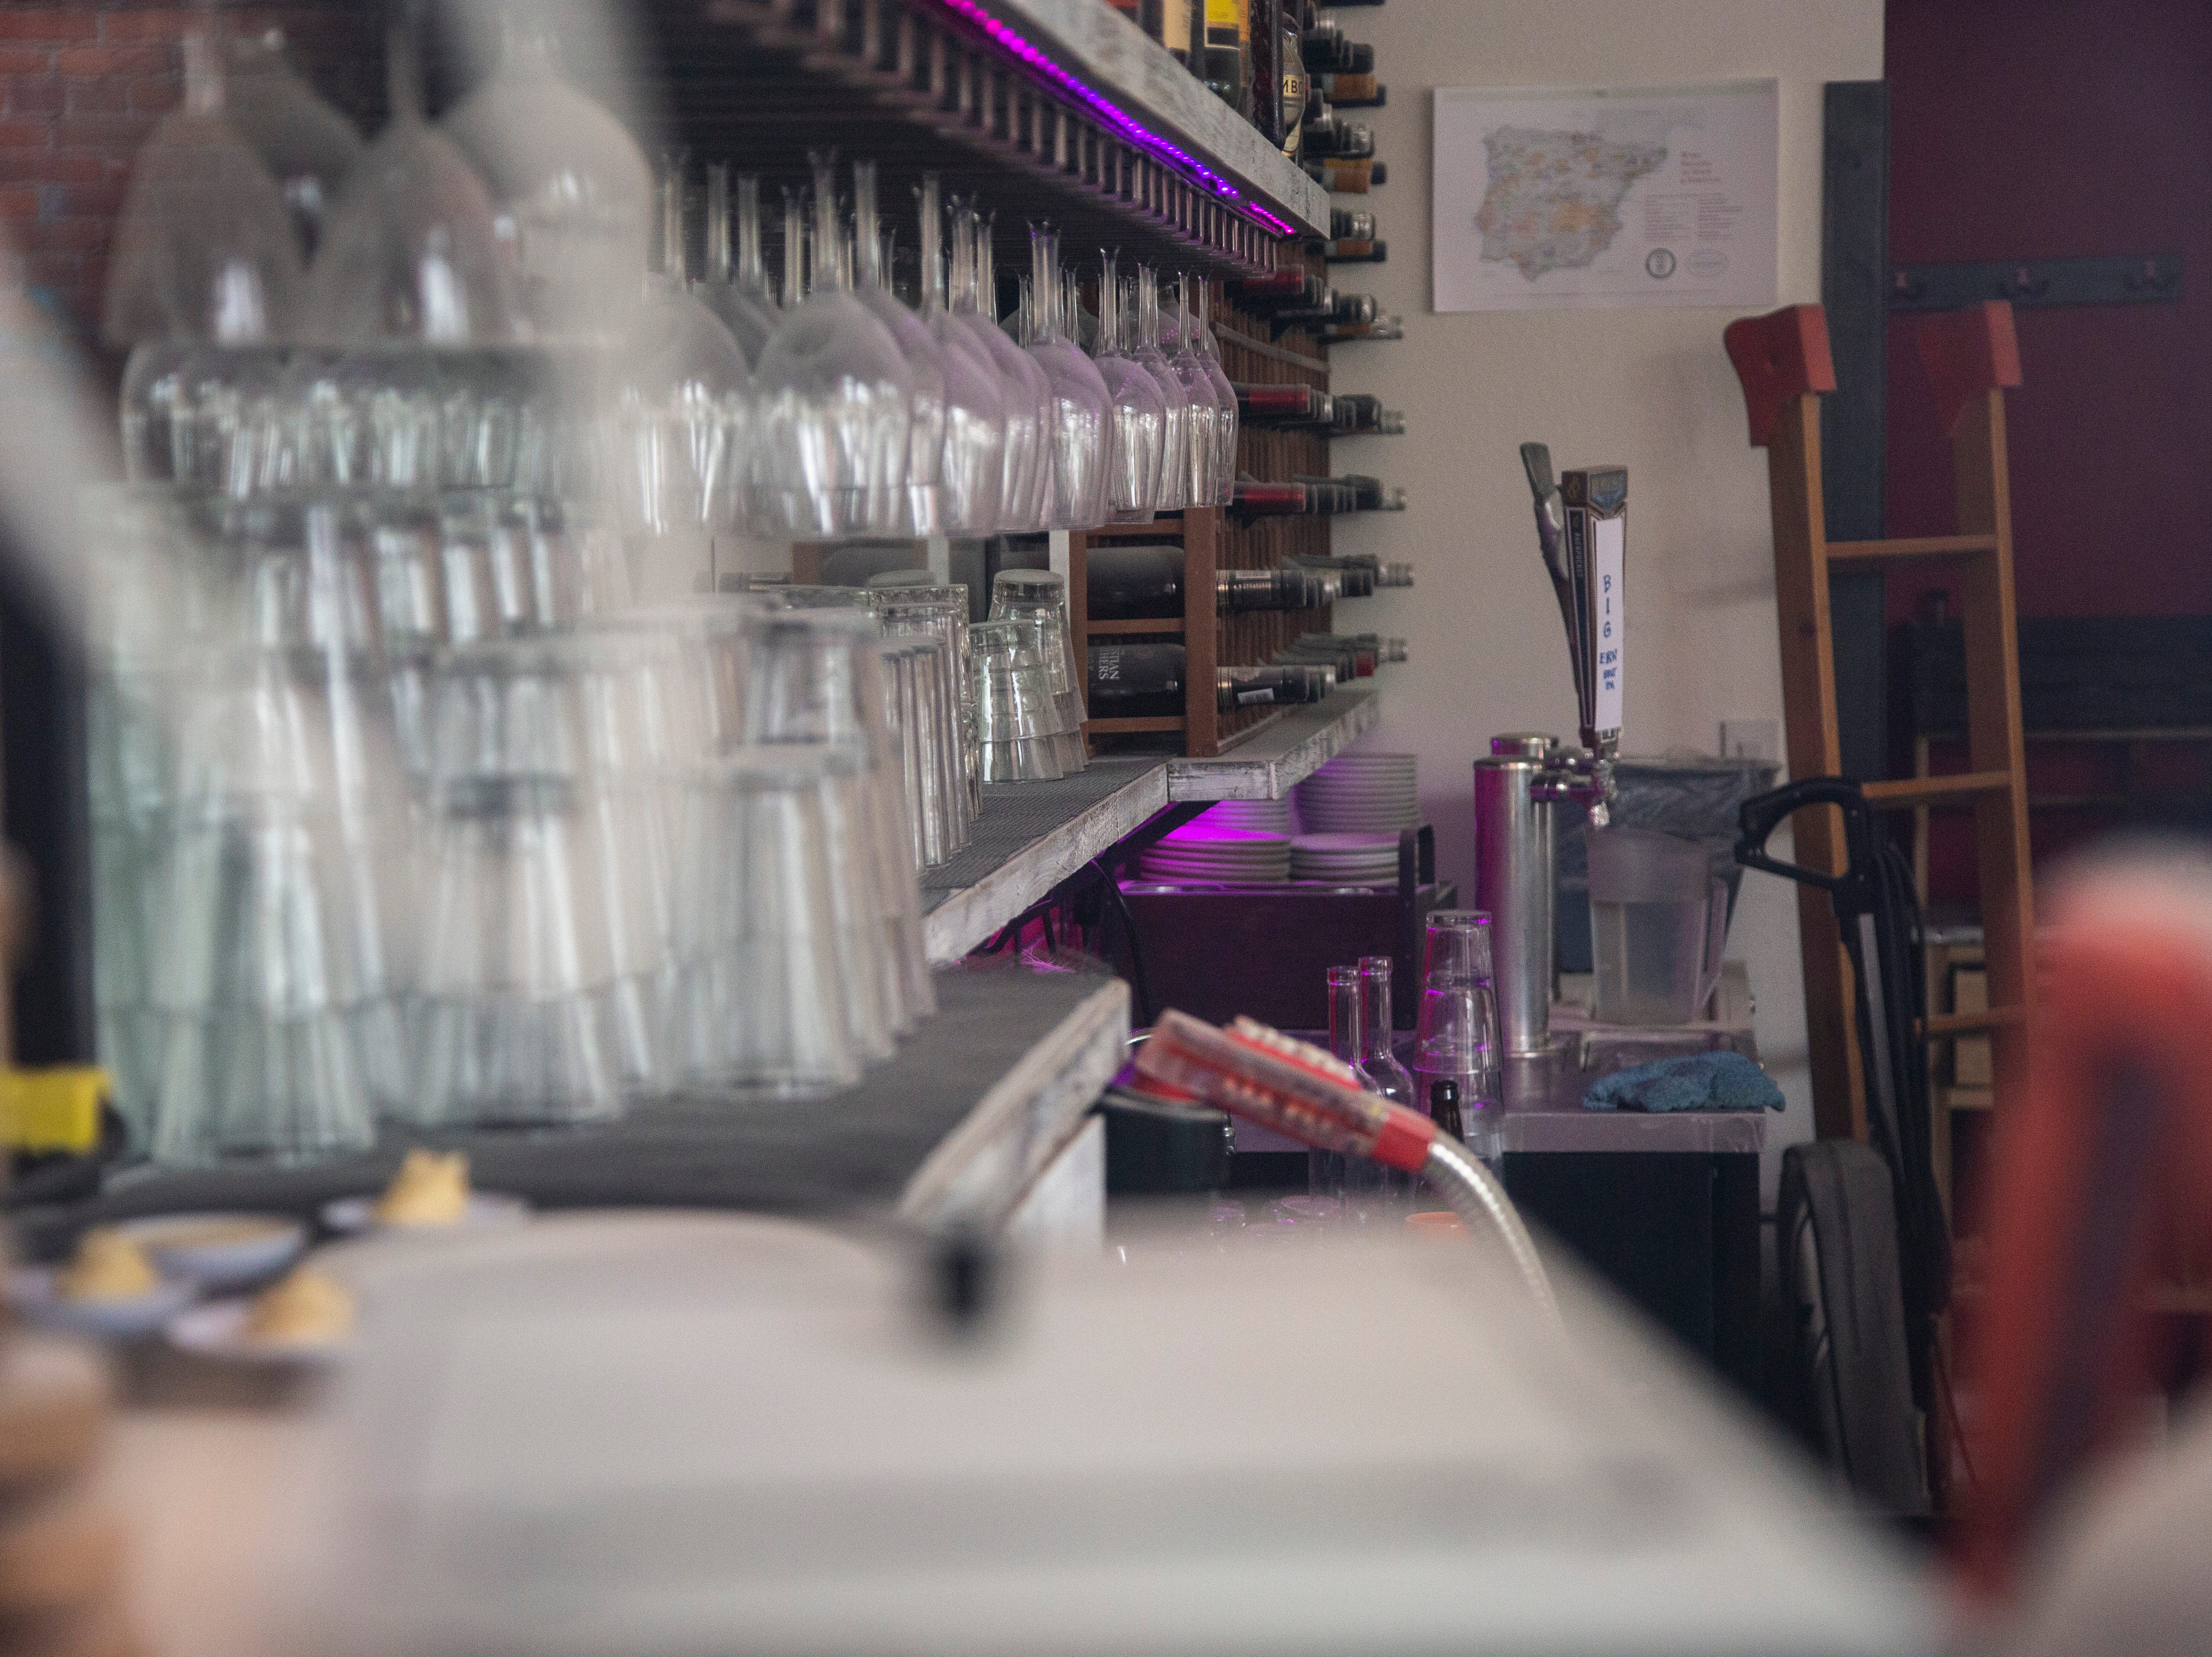 Glasses and bottles of wine are surrounded by damage, Tuesday, May 14, 2019, at Linn Street Dive in Iowa City, Iowa.